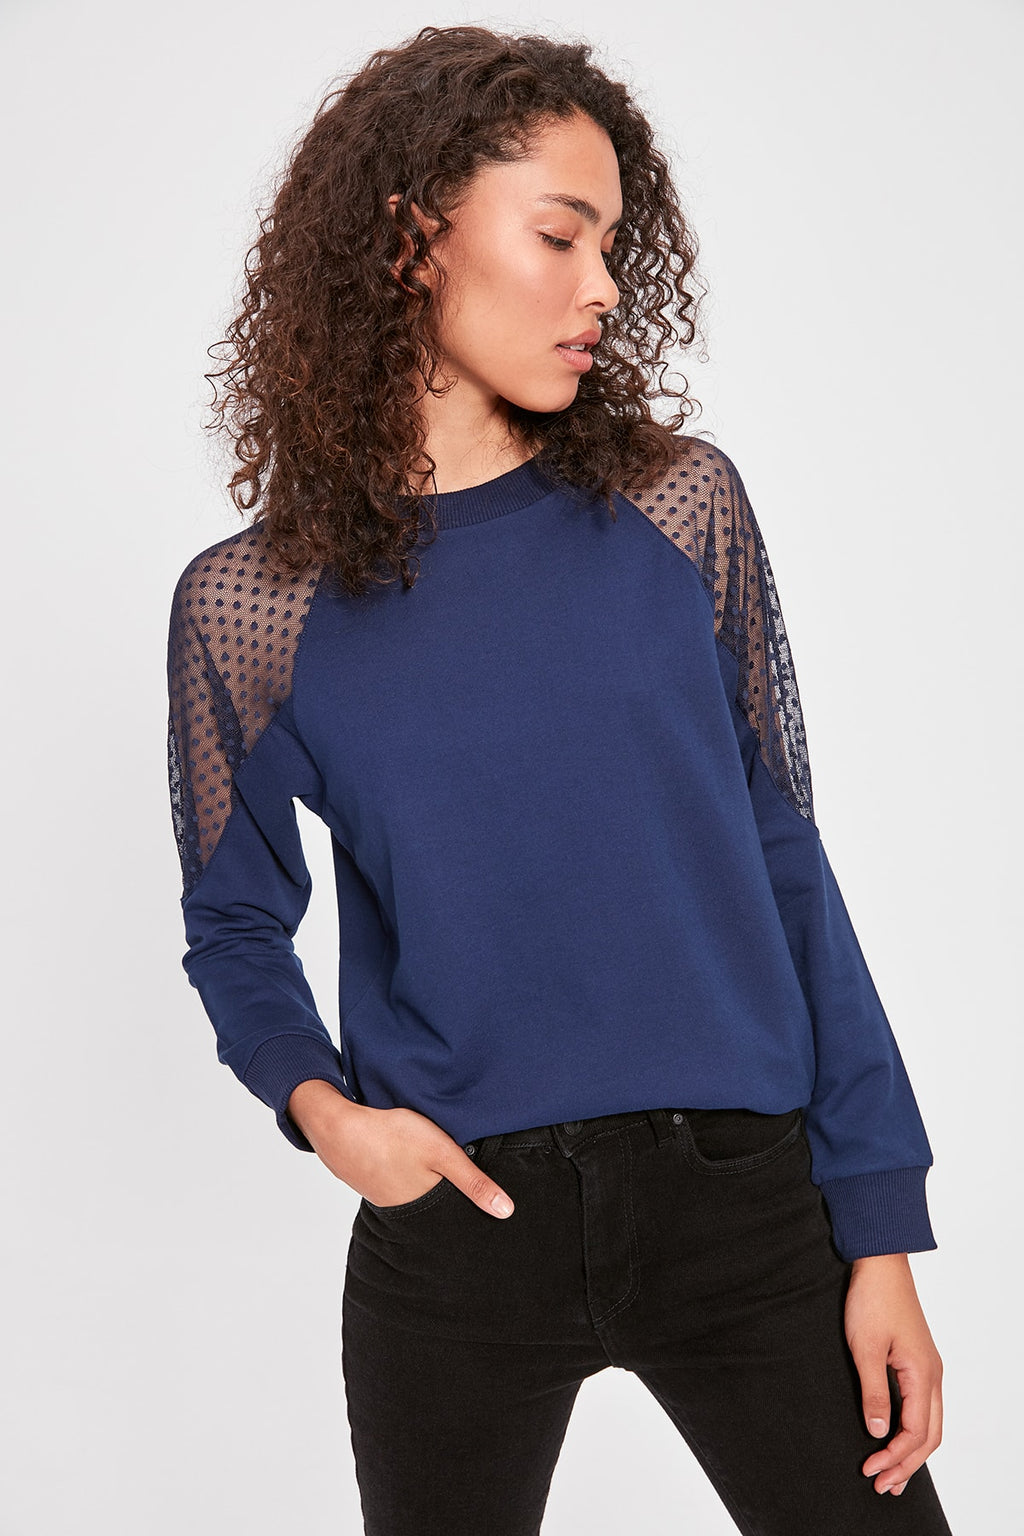 Indigo Tulle Detailed Basic Knitted Sweatshirt